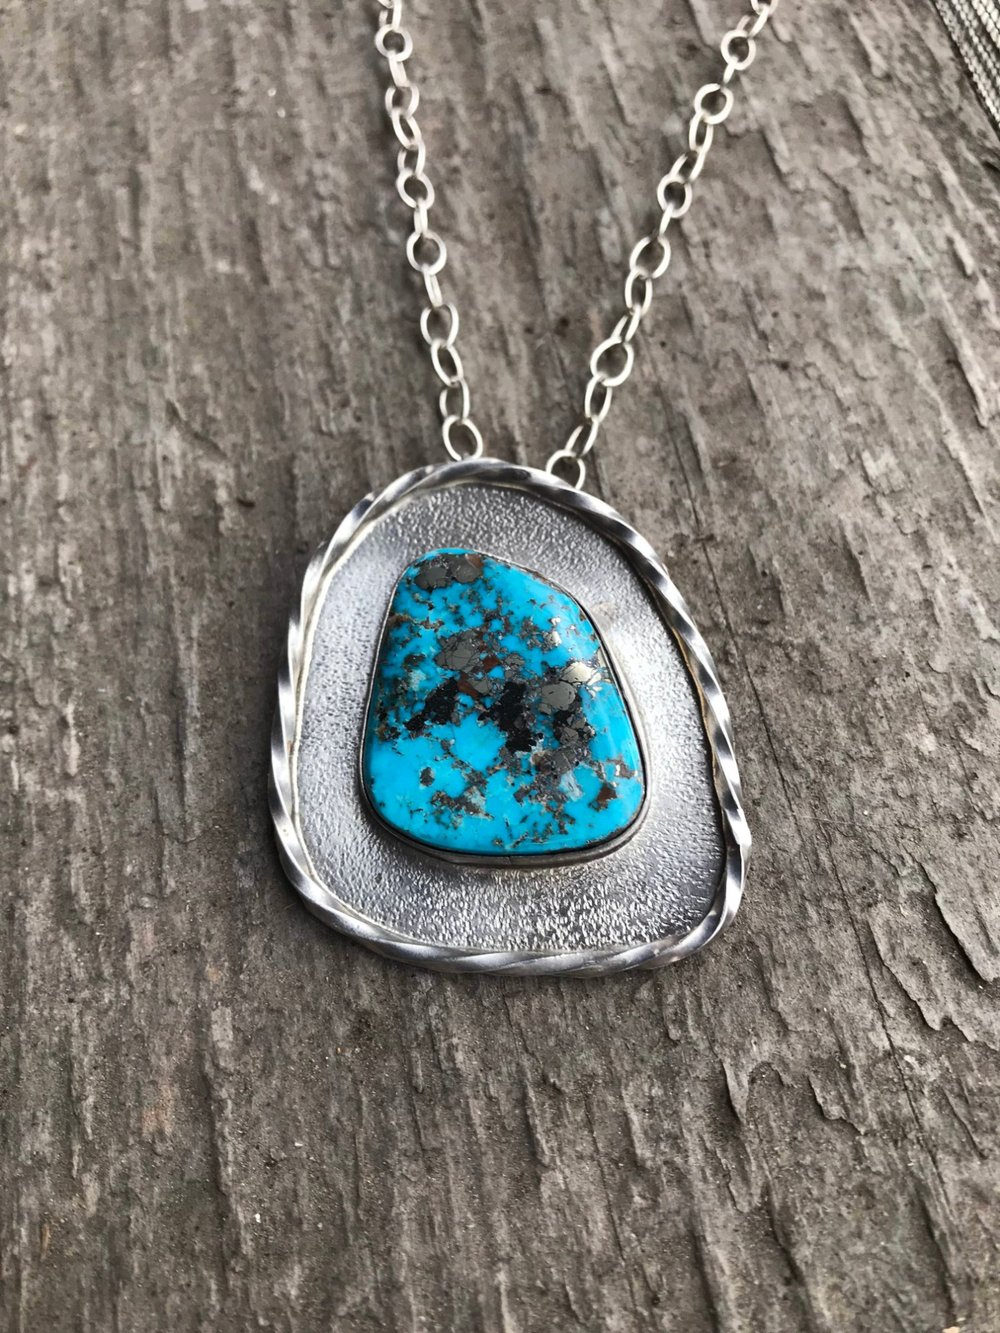 monte-rhodes-natural-turquoise-pendant.jpg